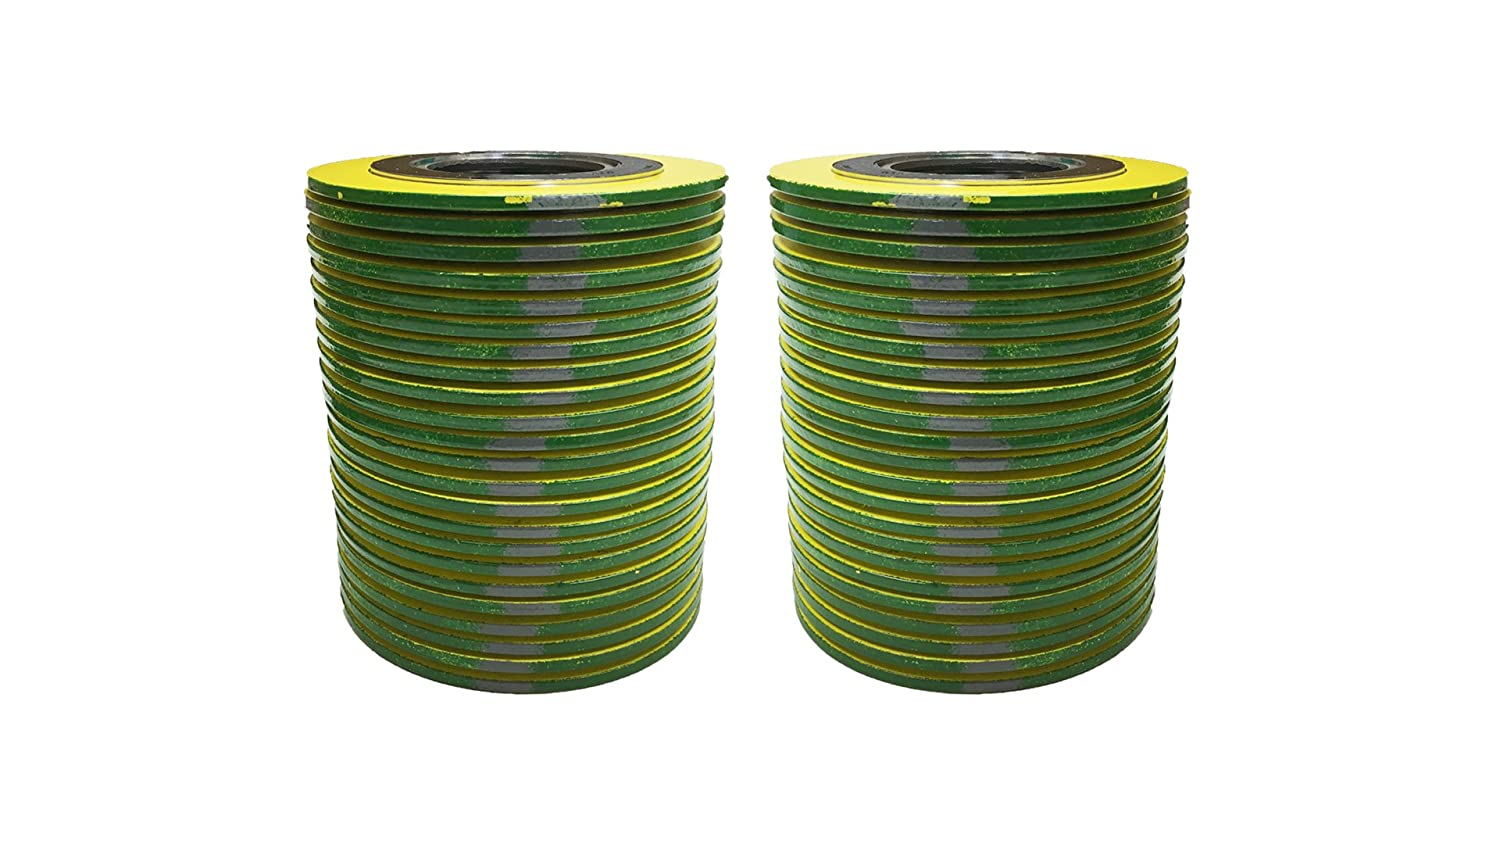 Green Band With Grey Stripes Sterling Seal 9000IR2500316GR2500X6 316L SS Spiral Wound Gasket with 316SS Inner Ring and Flexible Graphite Filler for 2-1//2 Pipe of NJ Pressure Class 2500 Supplied by Sur-Seal Inc Pack of 6